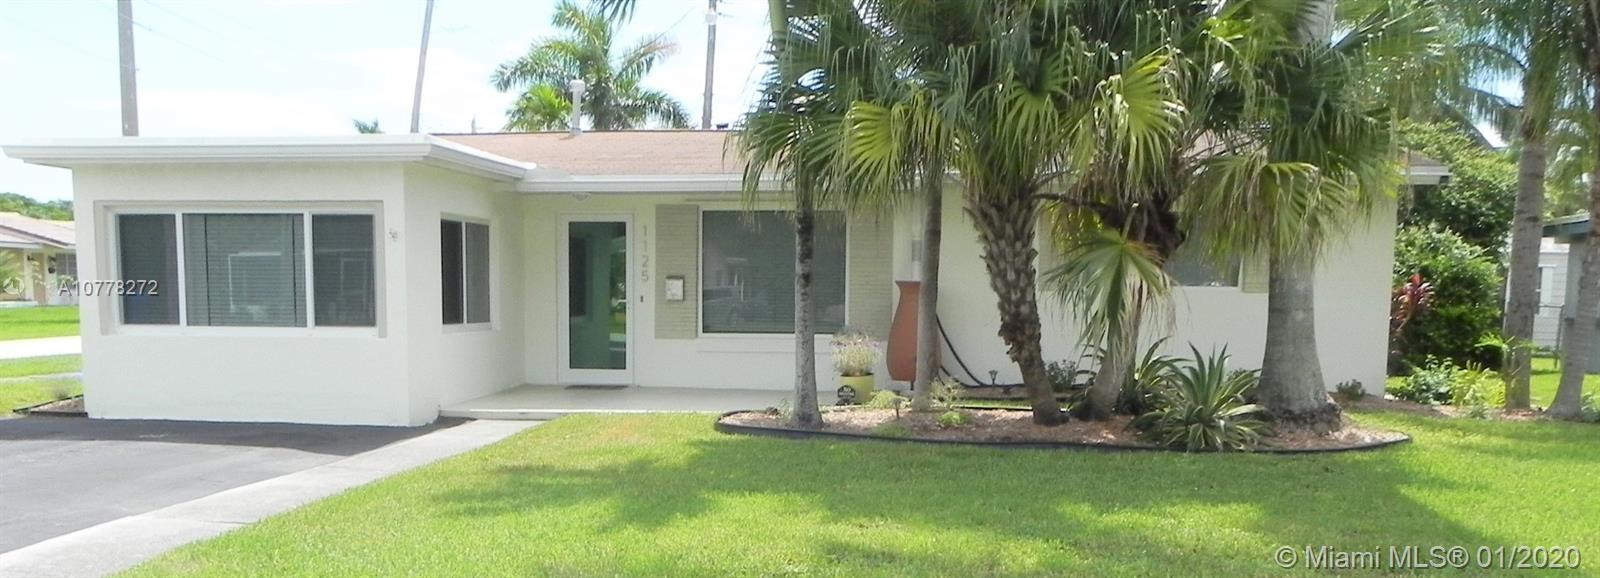 1125 N 14th Ave  For Sale A10778272, FL